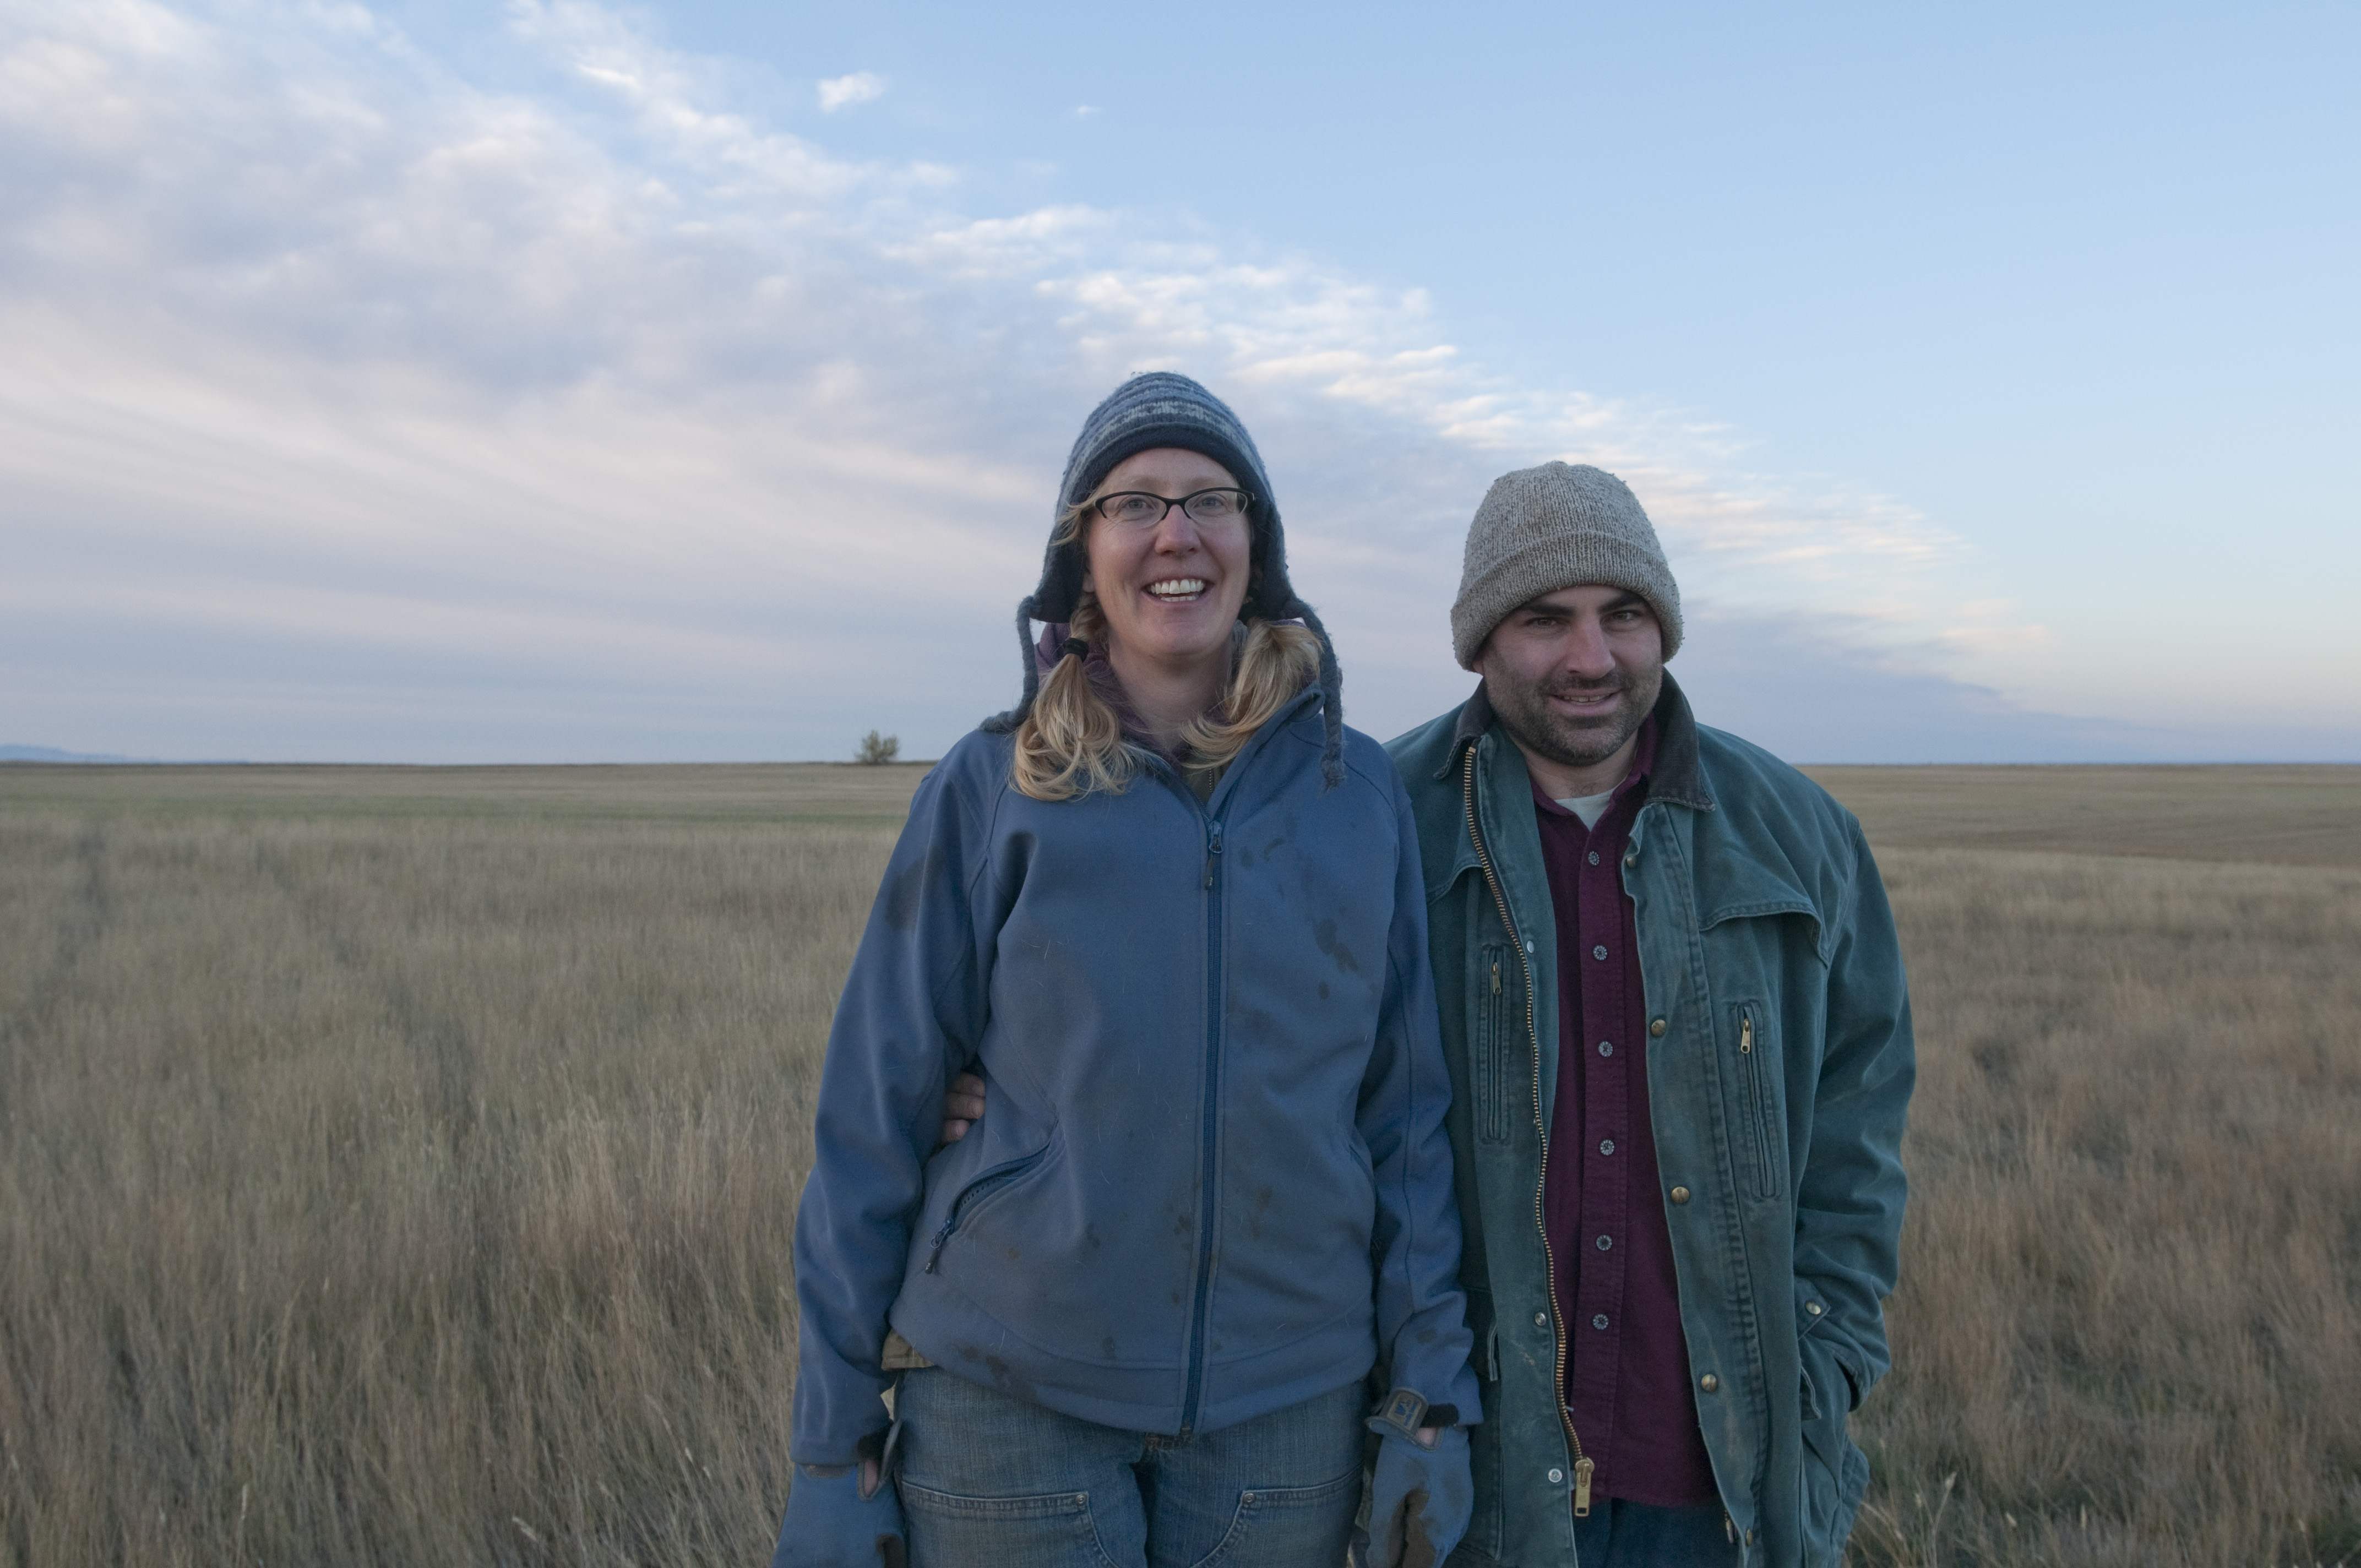 Caption: Anna and Doug Crabtree, northern Montana, Credit: Beth Gibson